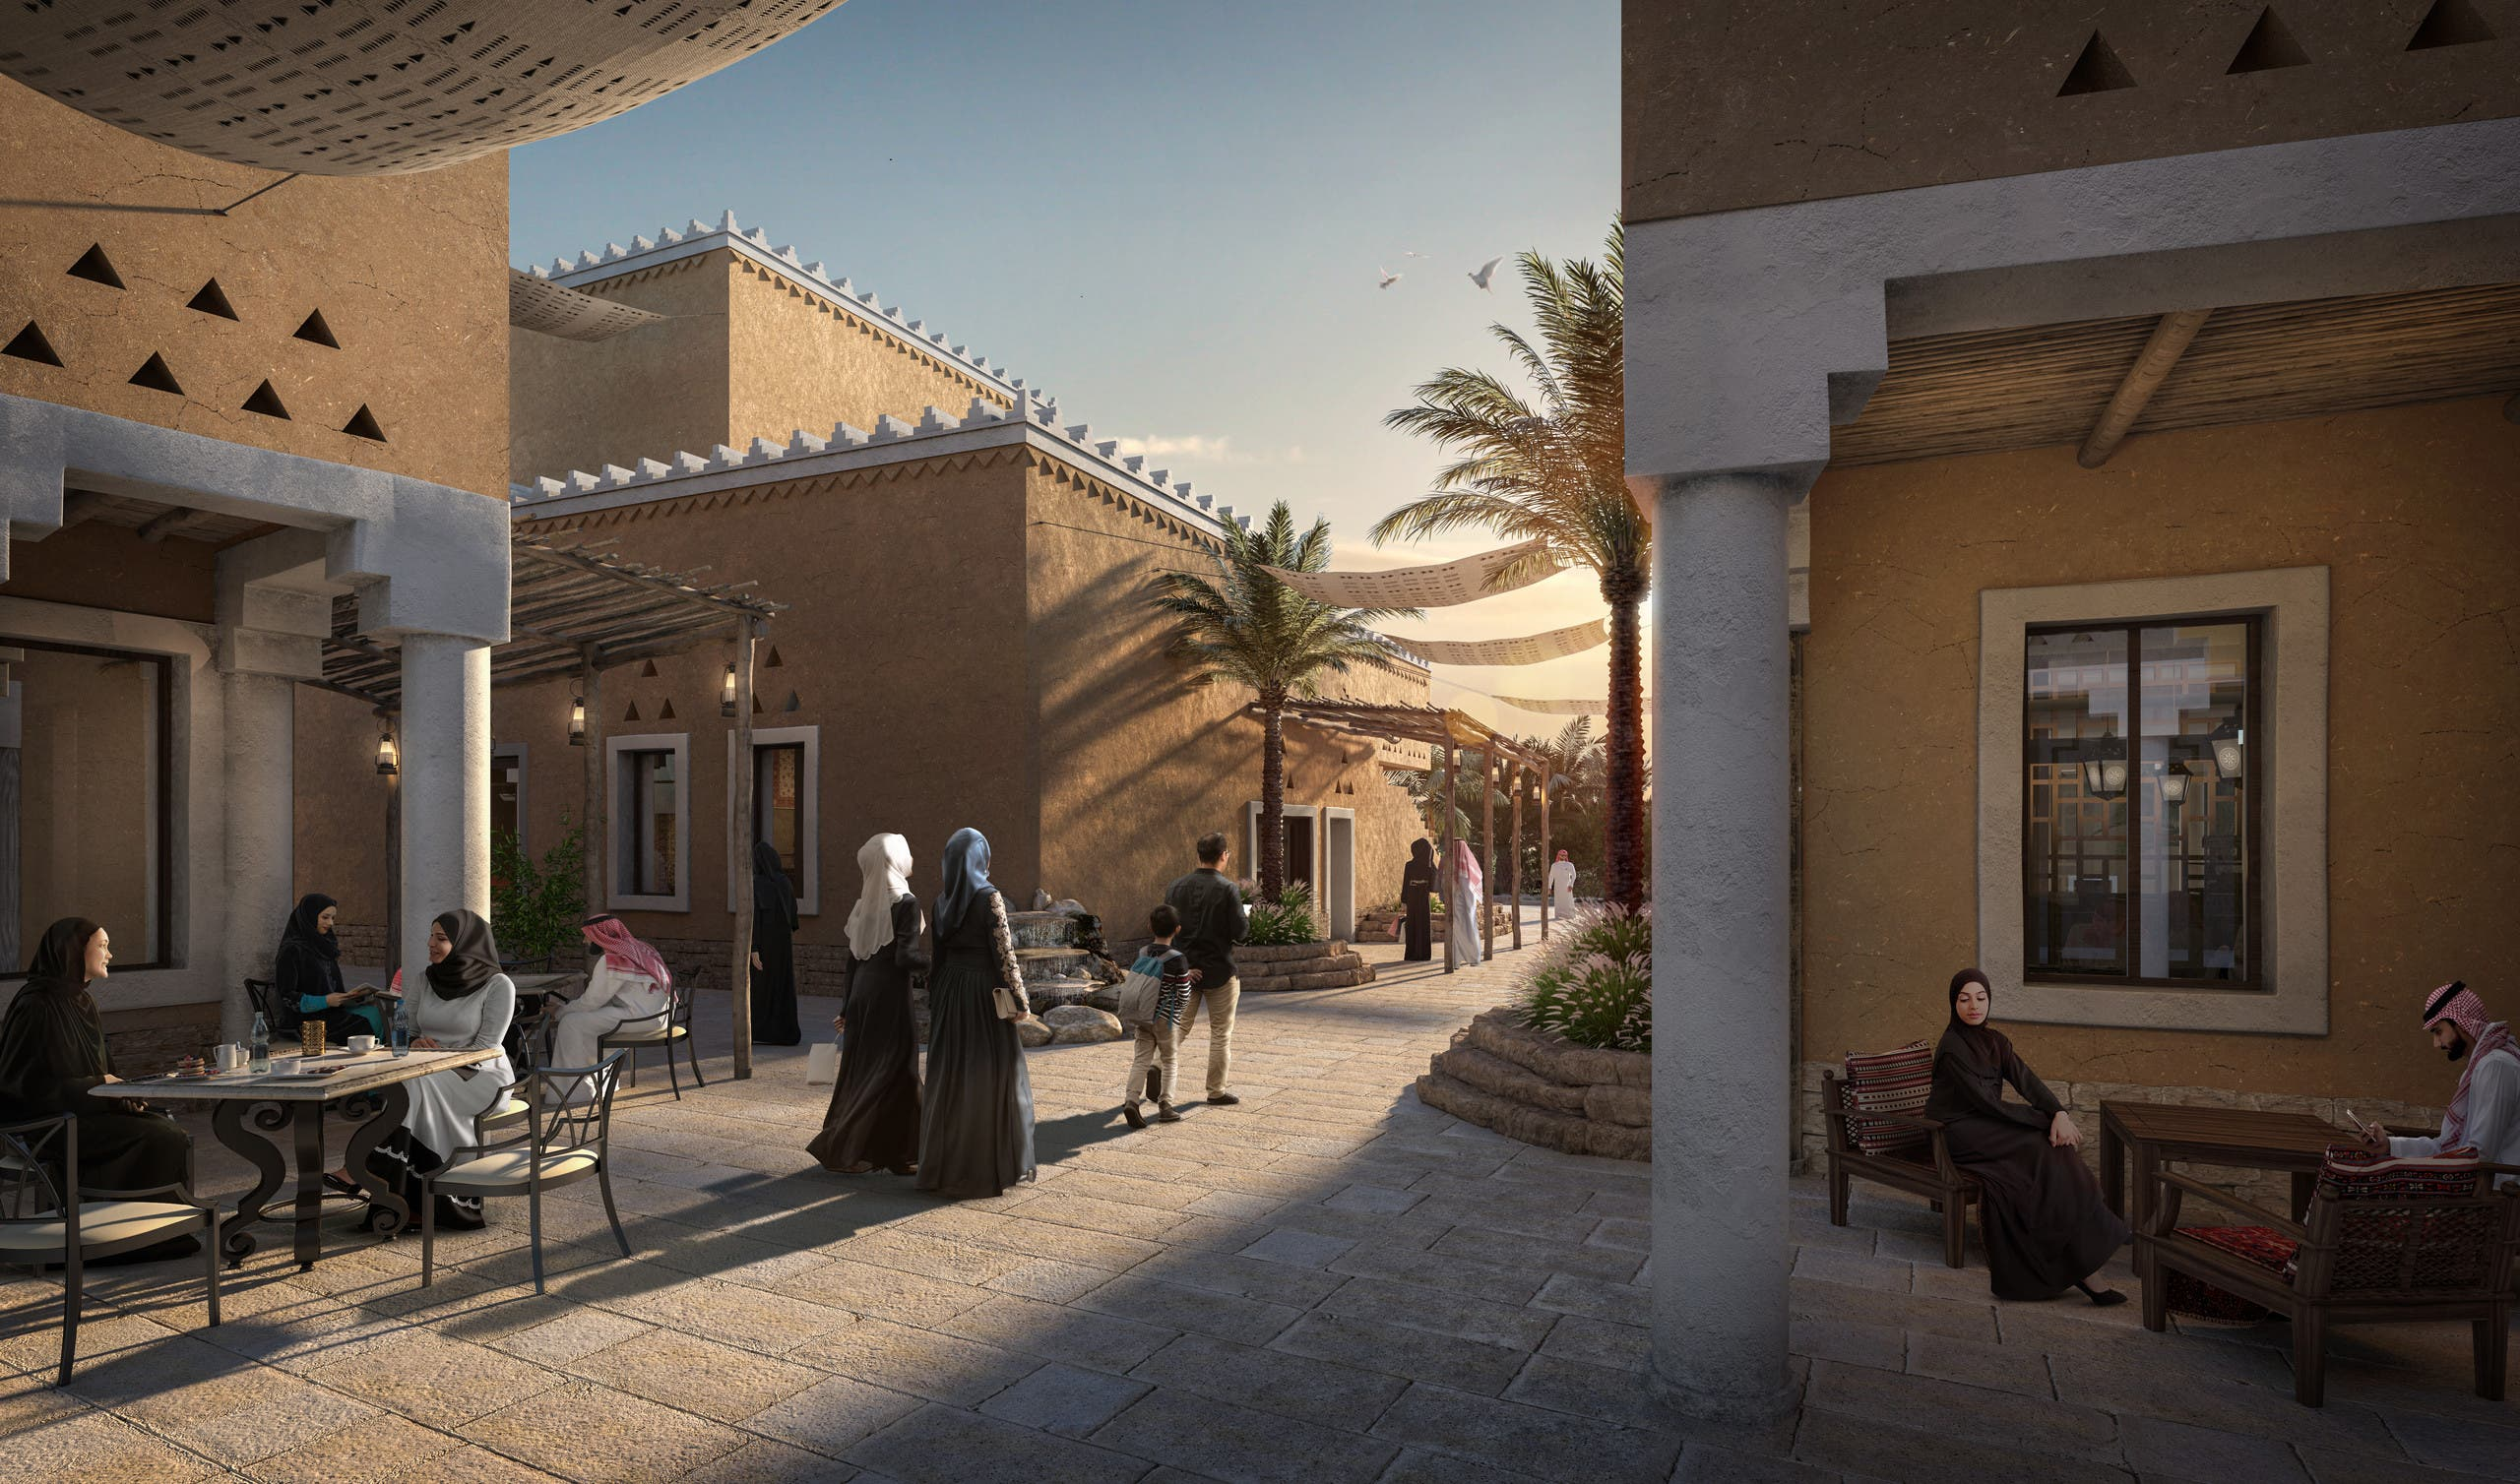 Al-Diriyah Gate's first district - Al Bujairi District – will open at the end of the year in December 2021 with 22 new restaurants. (Supplied)